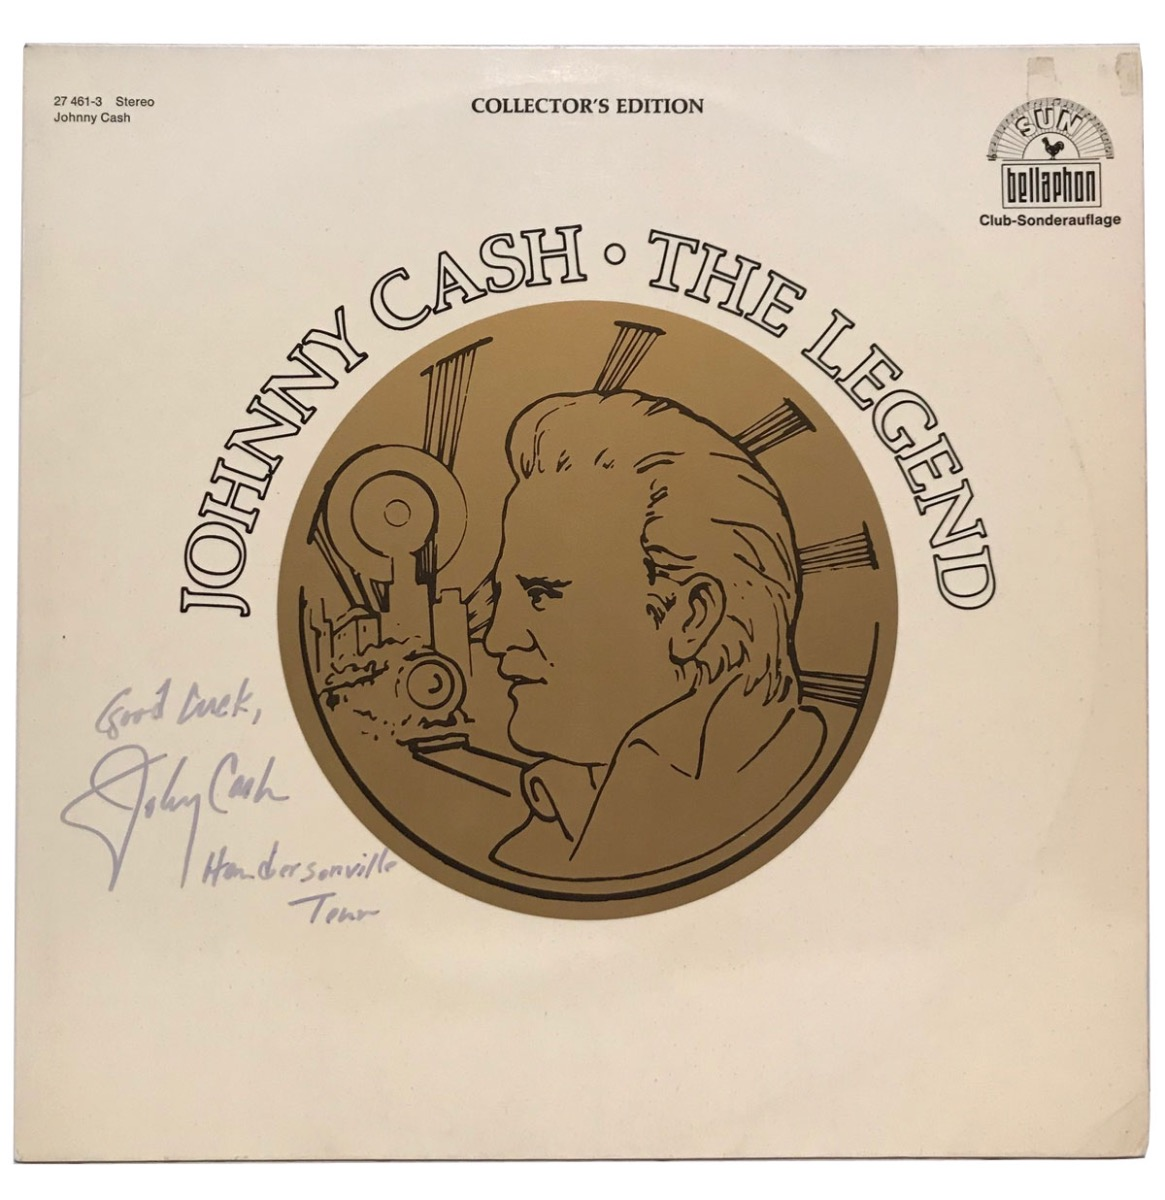 Johnny Cash - The Legend LP Gesigneerd Door Johnny Cash